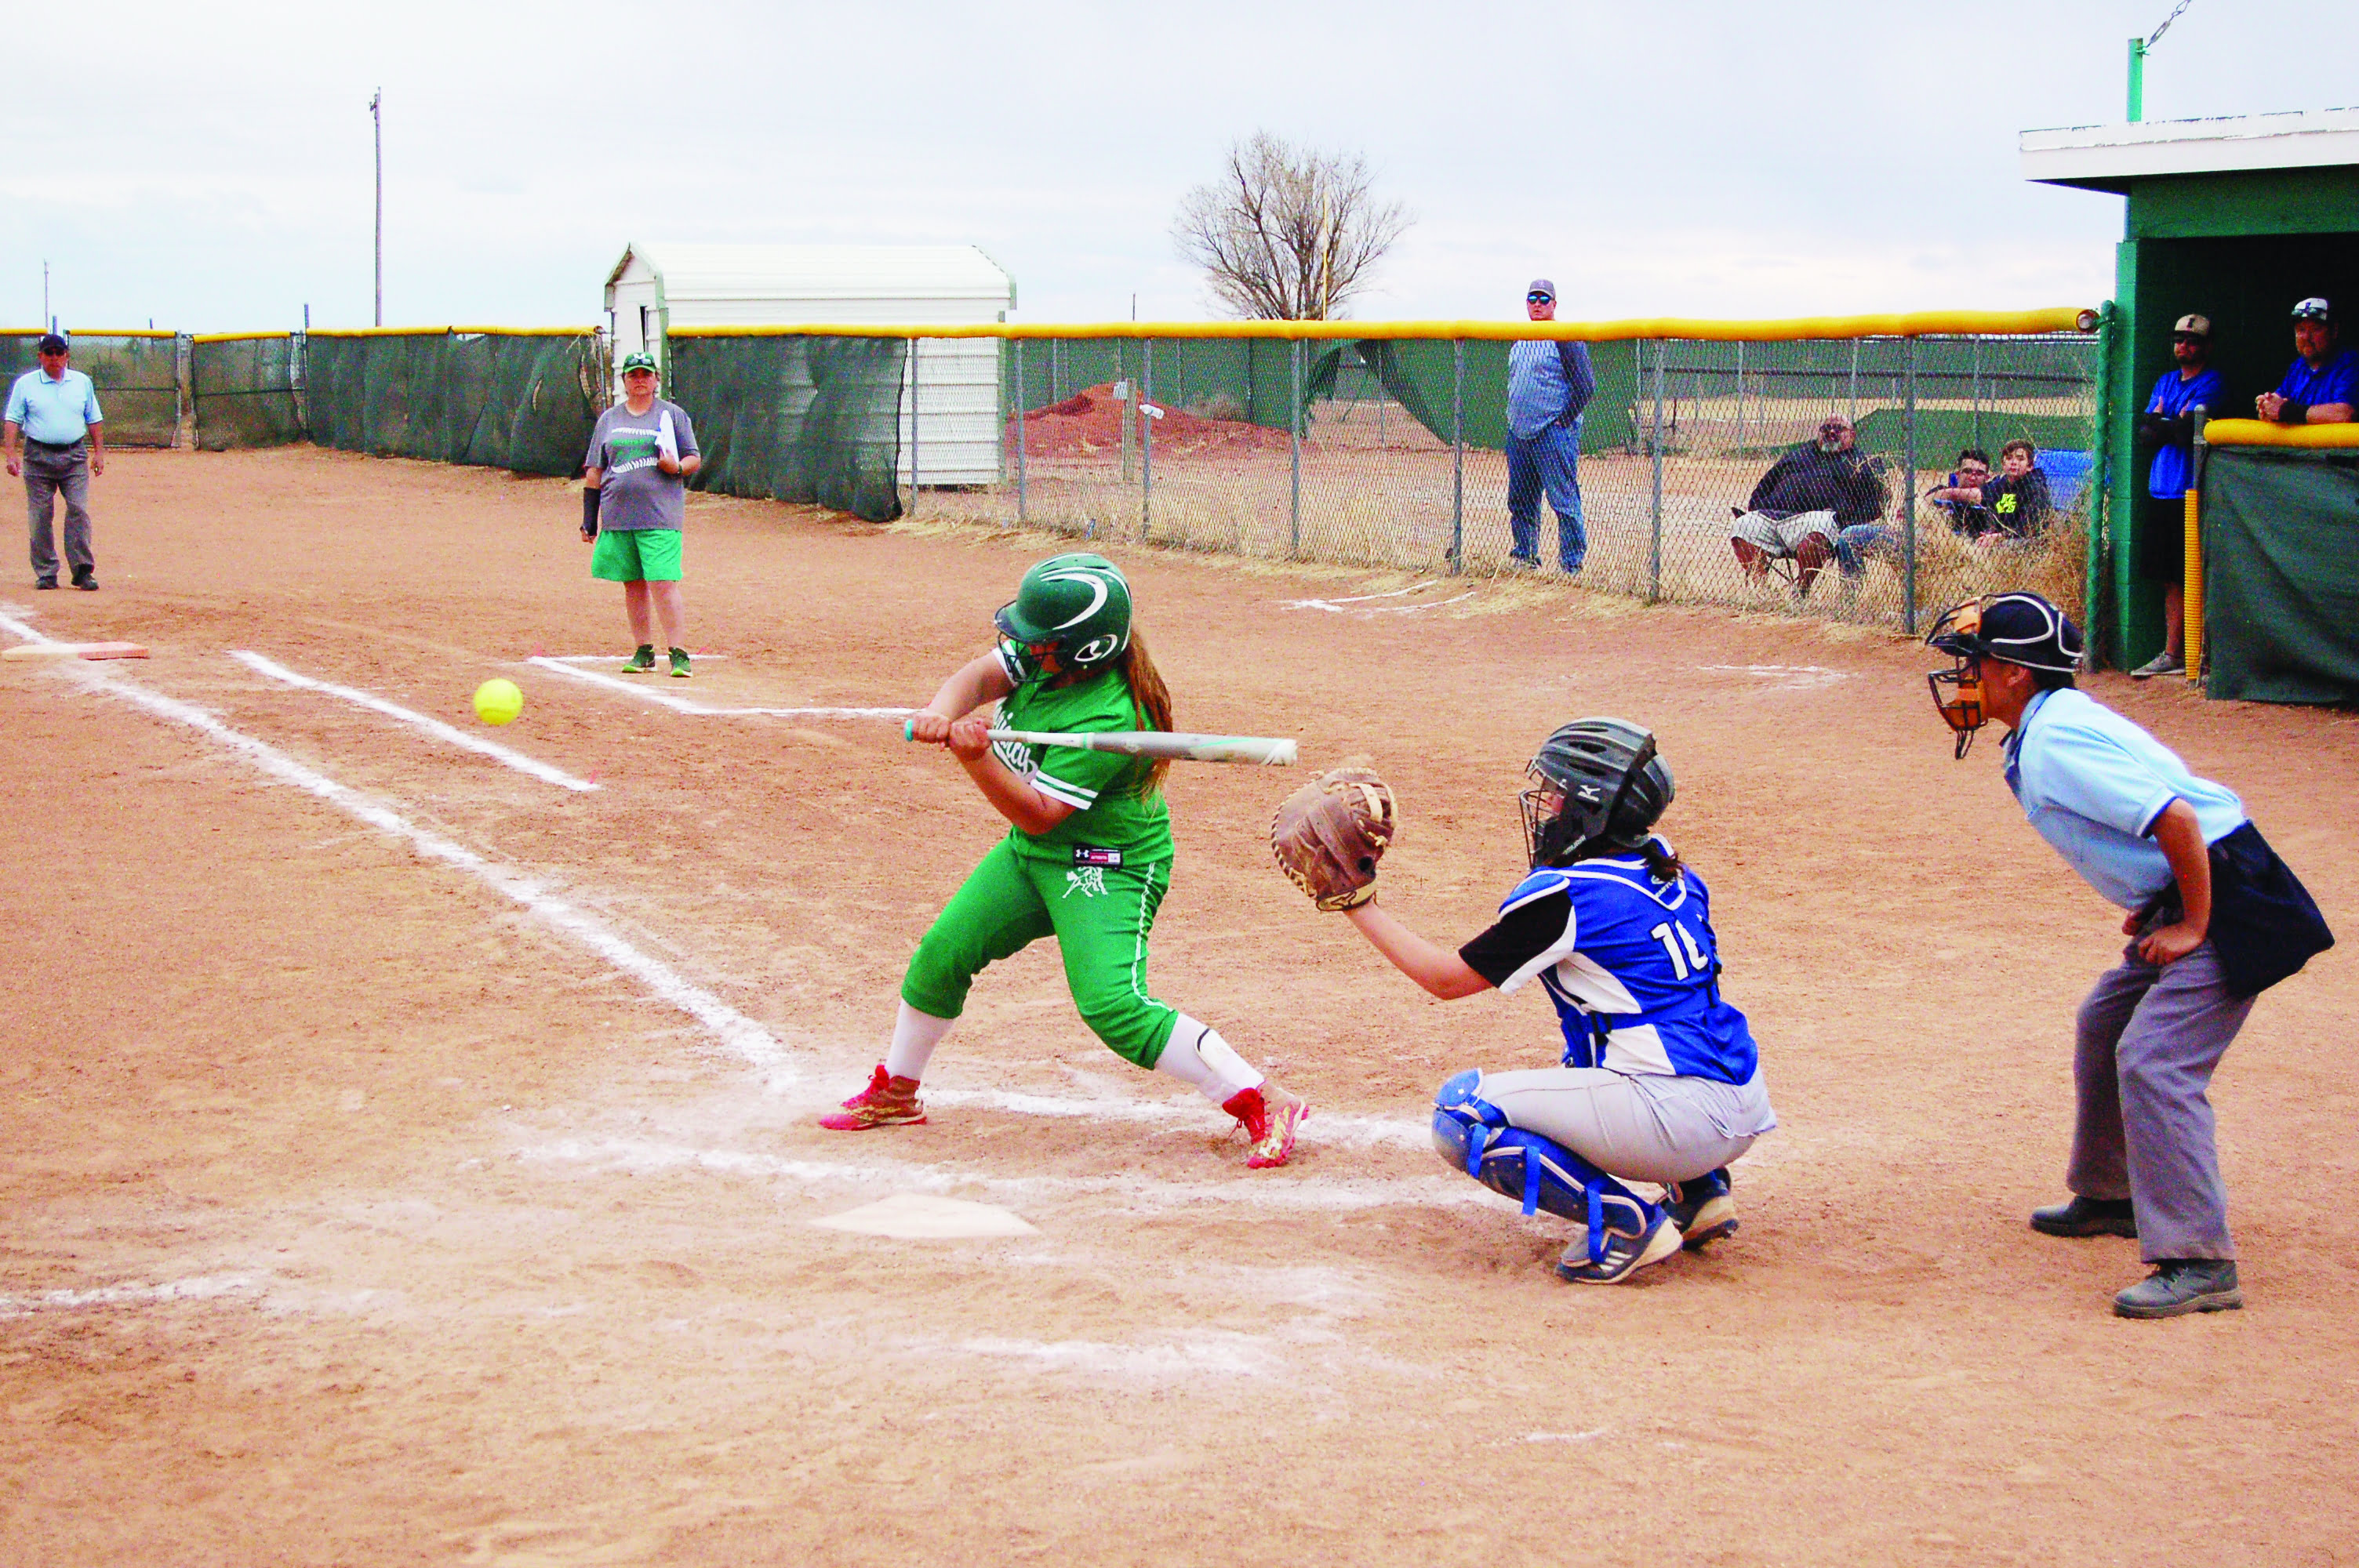 Lady Pintos take second-straight crown at annual softball tournament